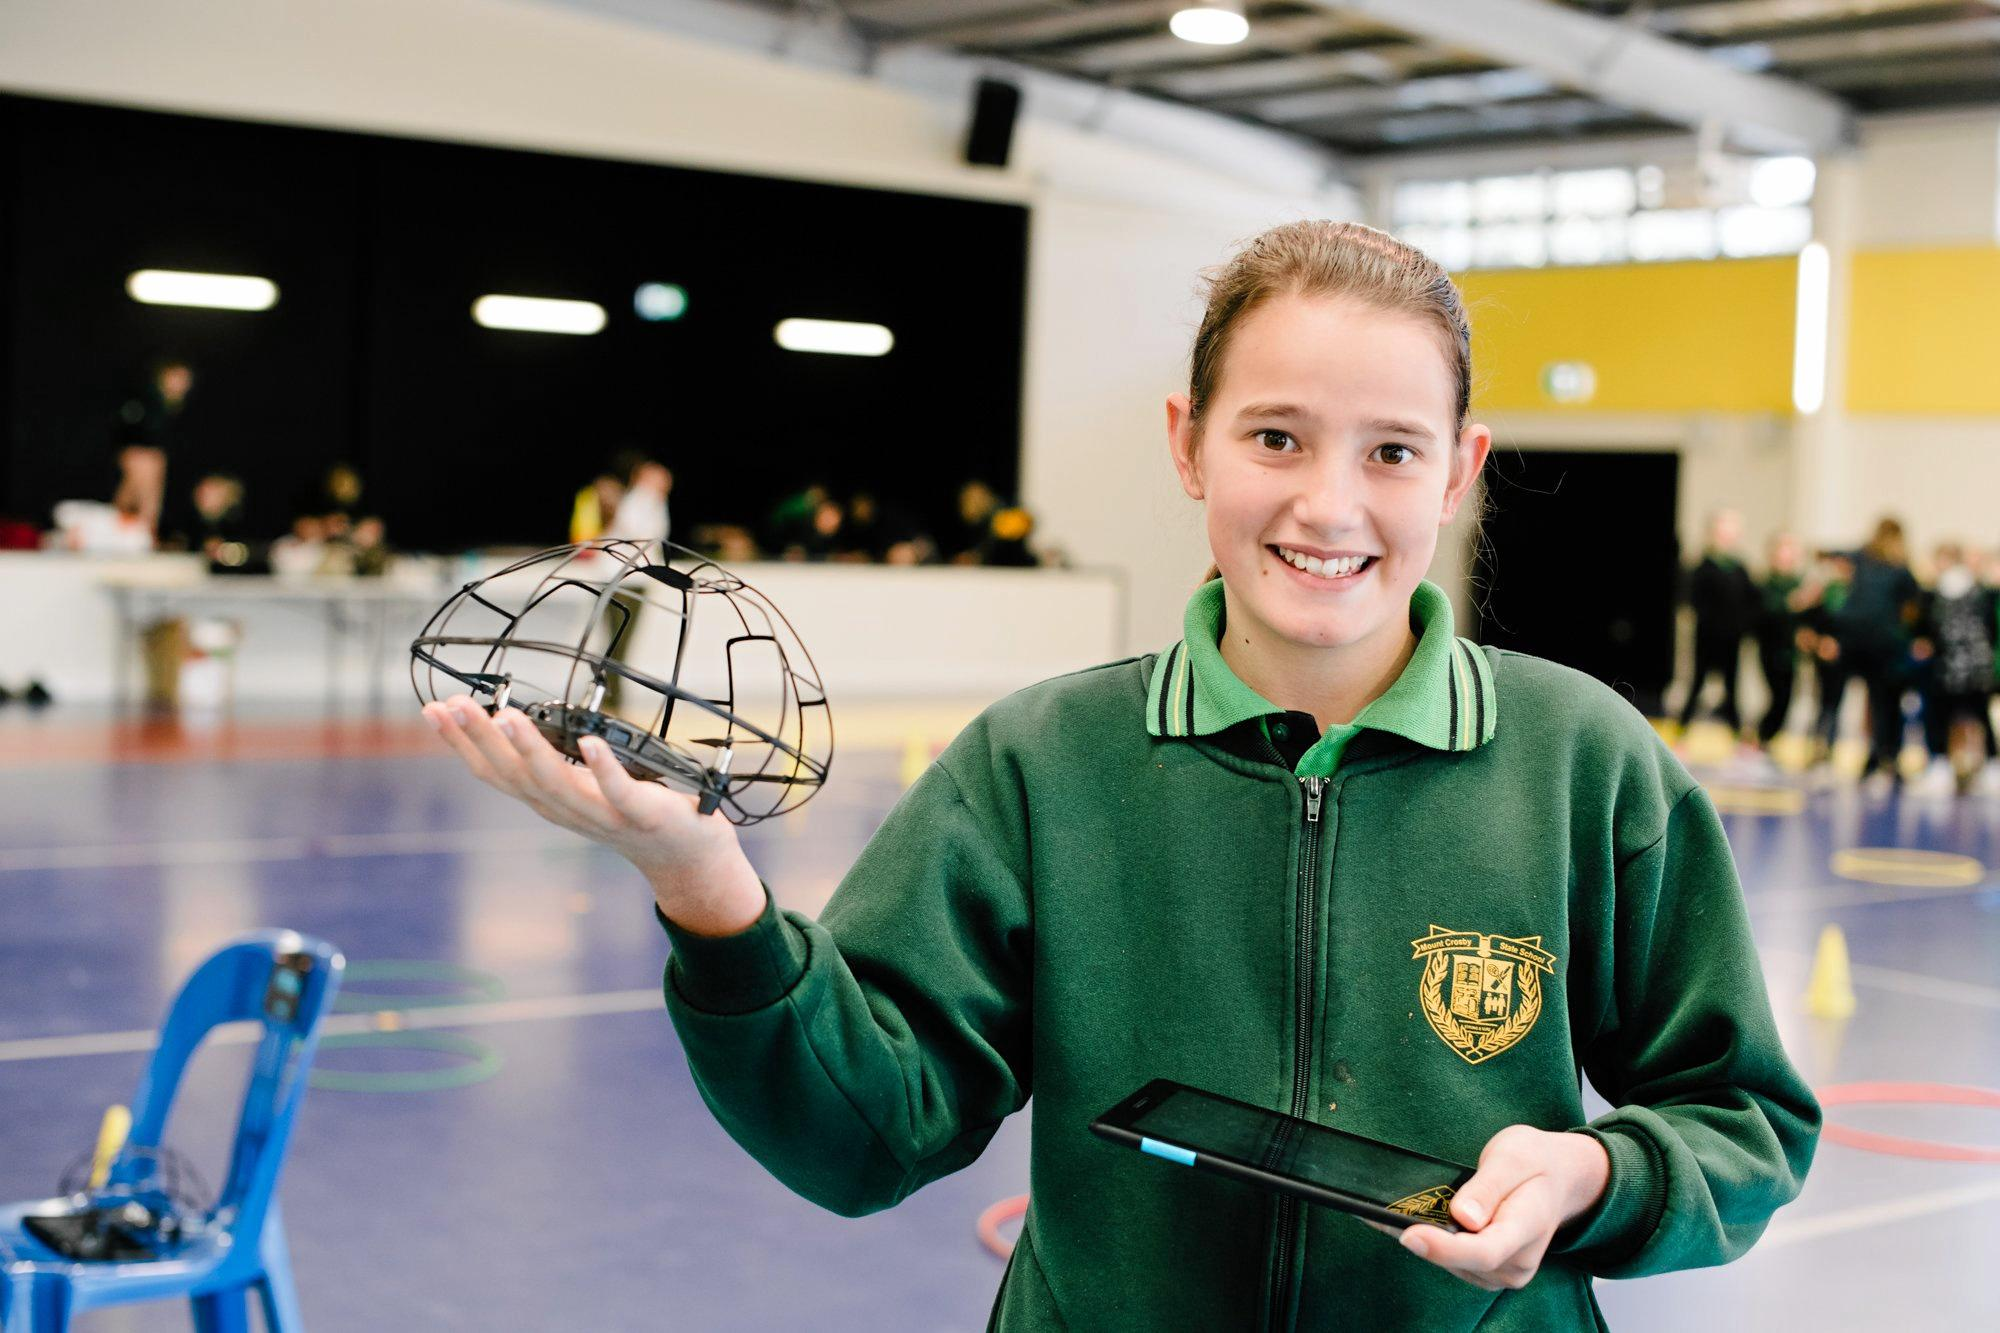 Grace Grennell had lots of fun learning about drones.